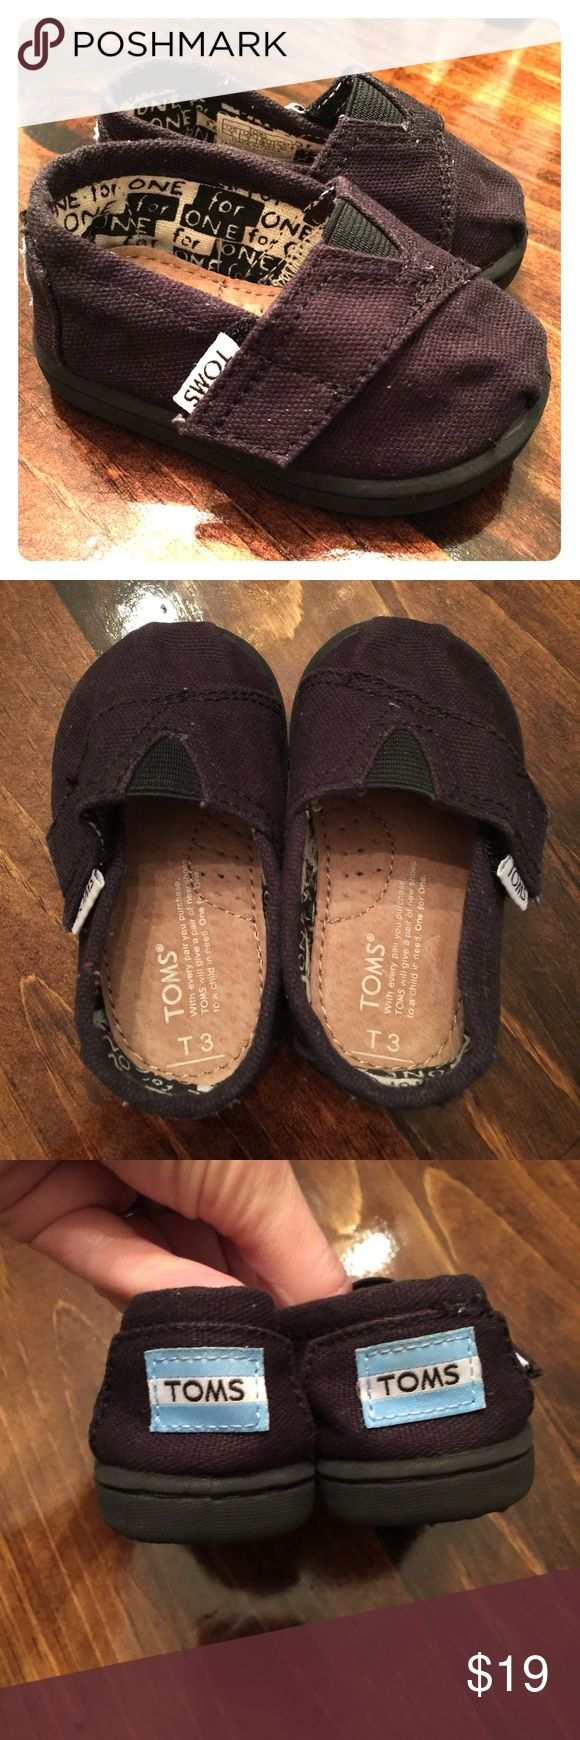 Like new toddler boys' TOMS size 3T Excellent used condition; like new. Black color matches everything! Smoke and pet free home. TOMS Shoes Sneakers